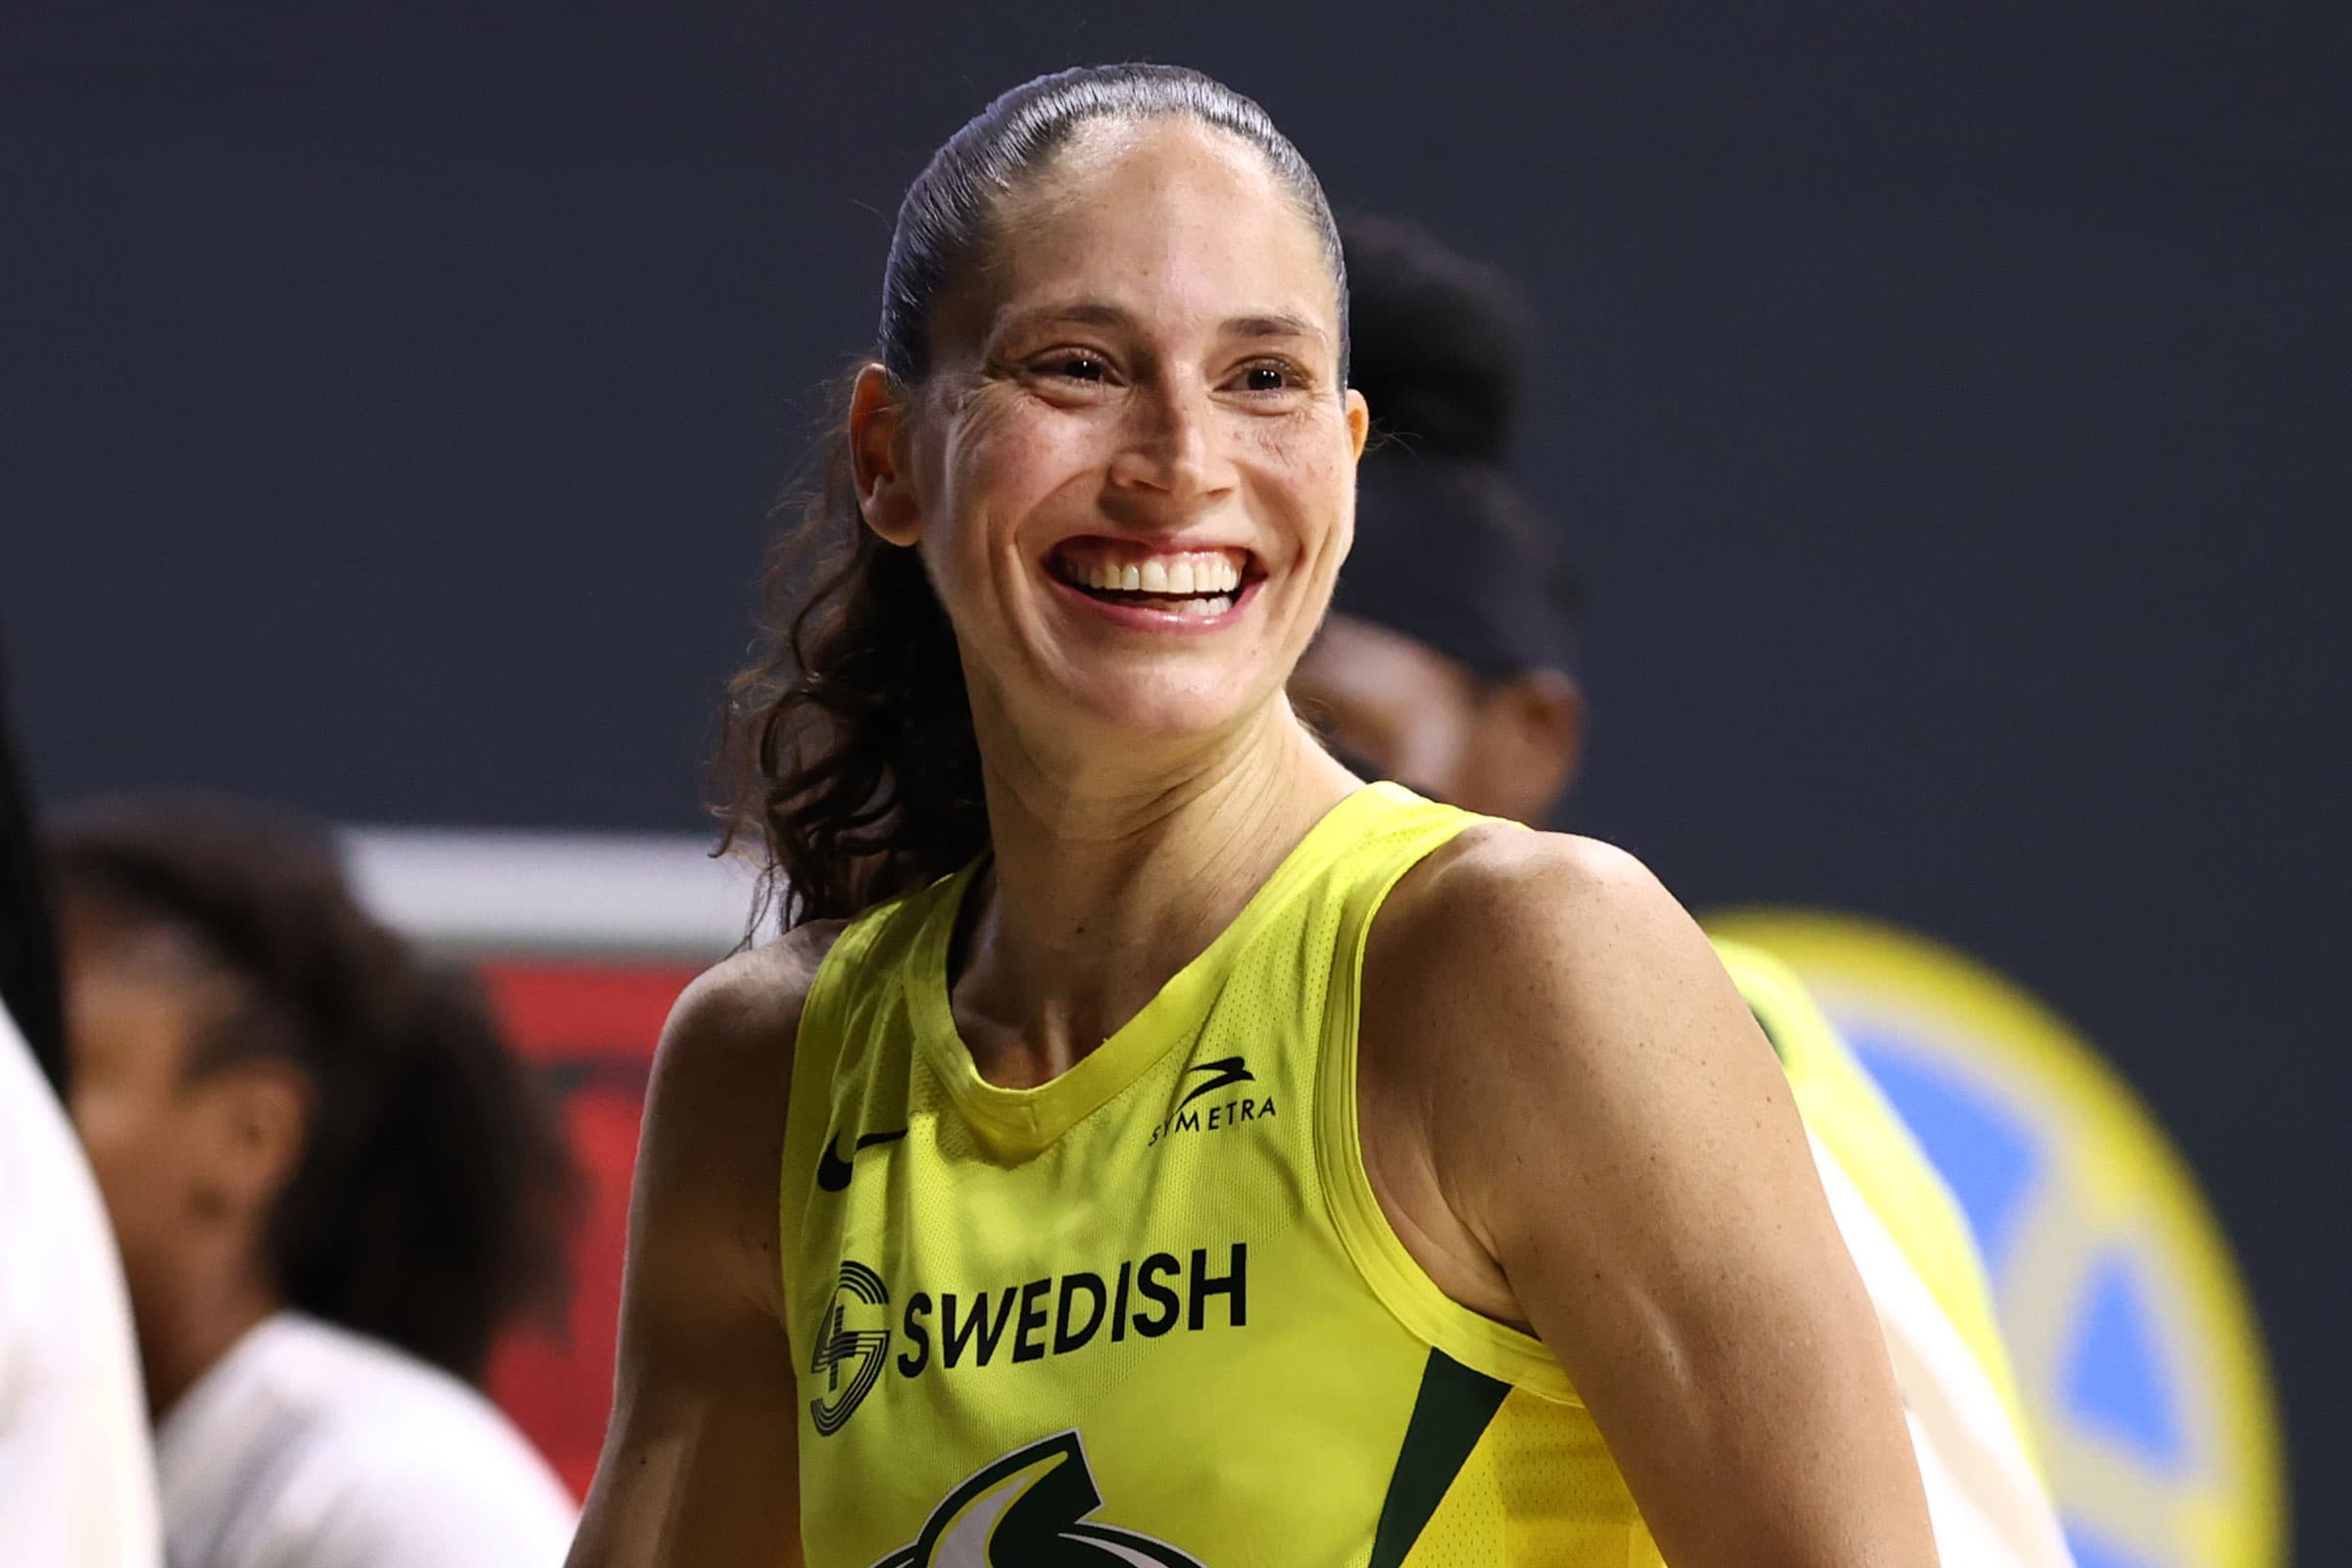 CarMax ads featuring basketball star Sue Bird go viral, call attention to gender bias in sports